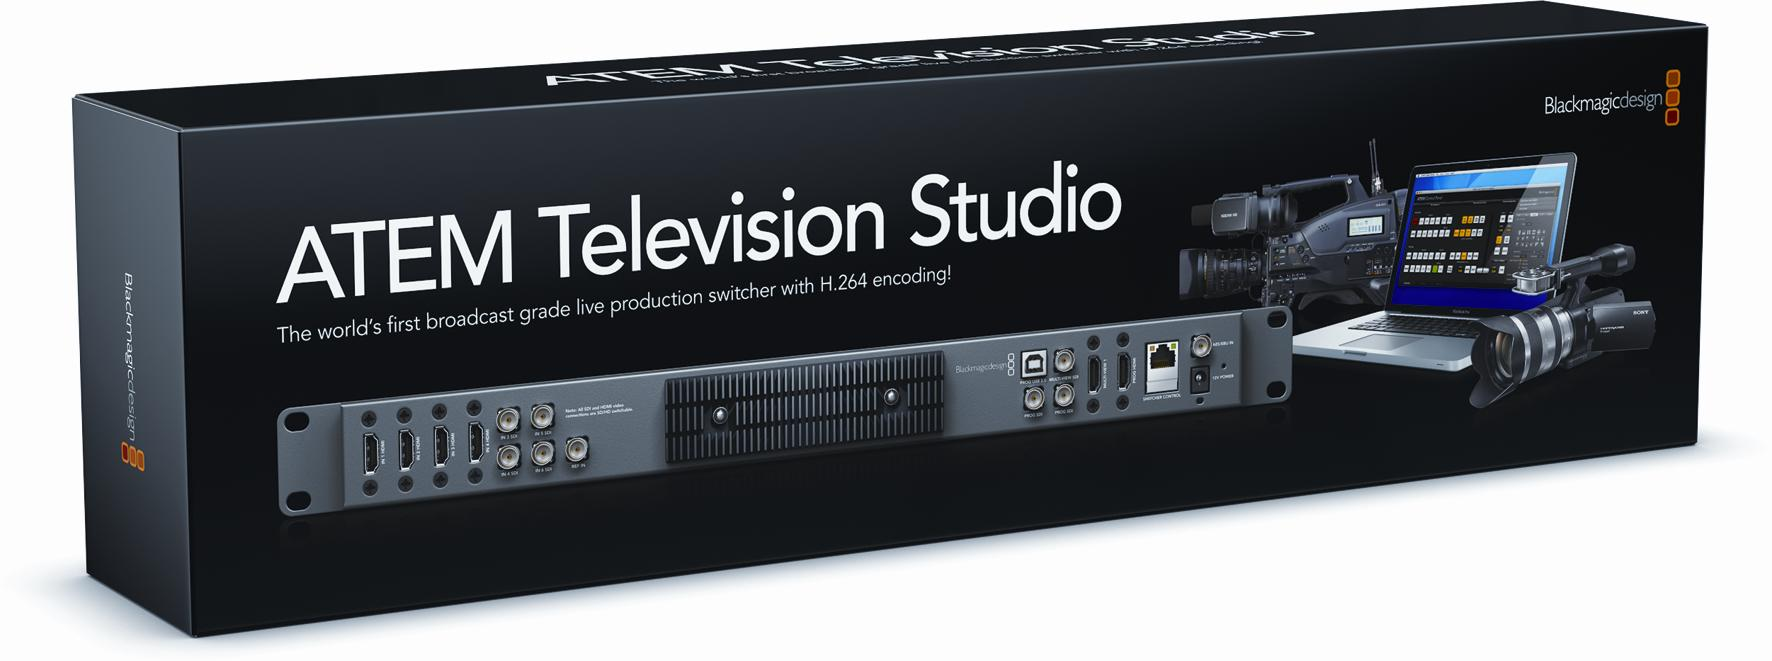 Blackmagic ATEM TV studio